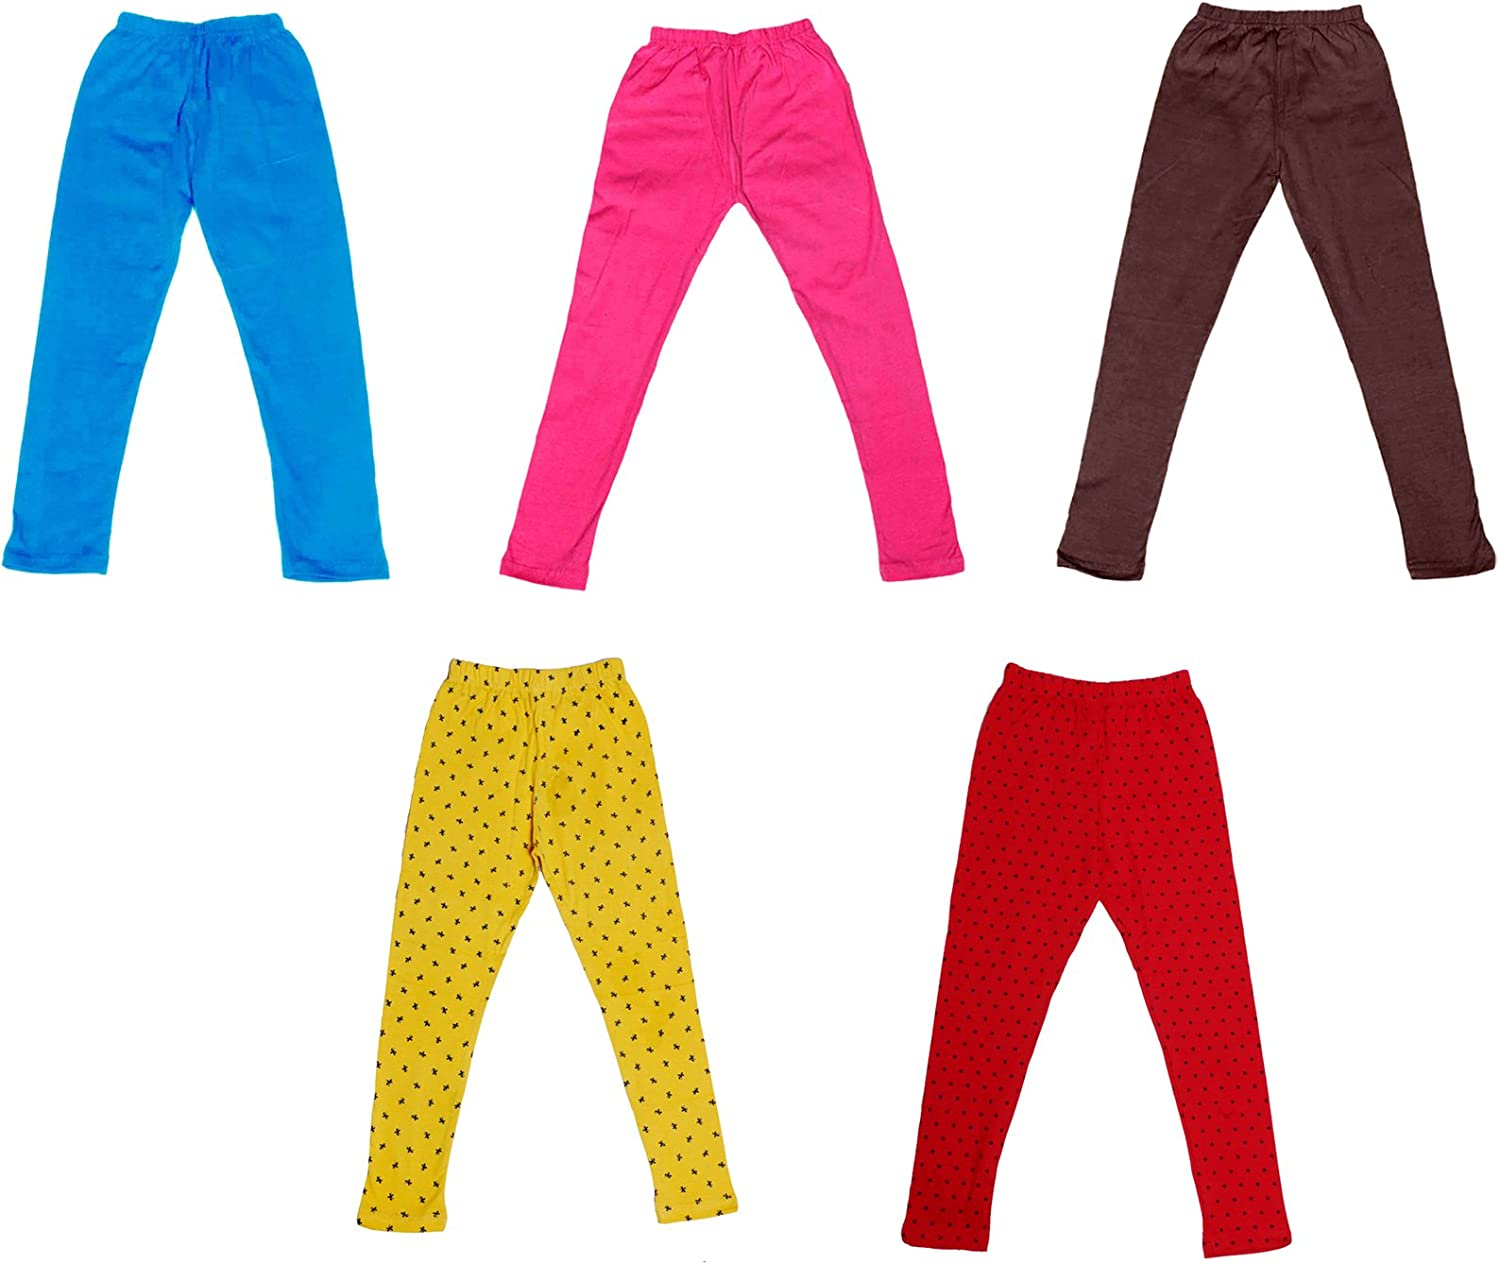 Indistar Super Soft and Stylish 3 Solid and 2 Cotton Printed Leggings For Girls Pack of 5